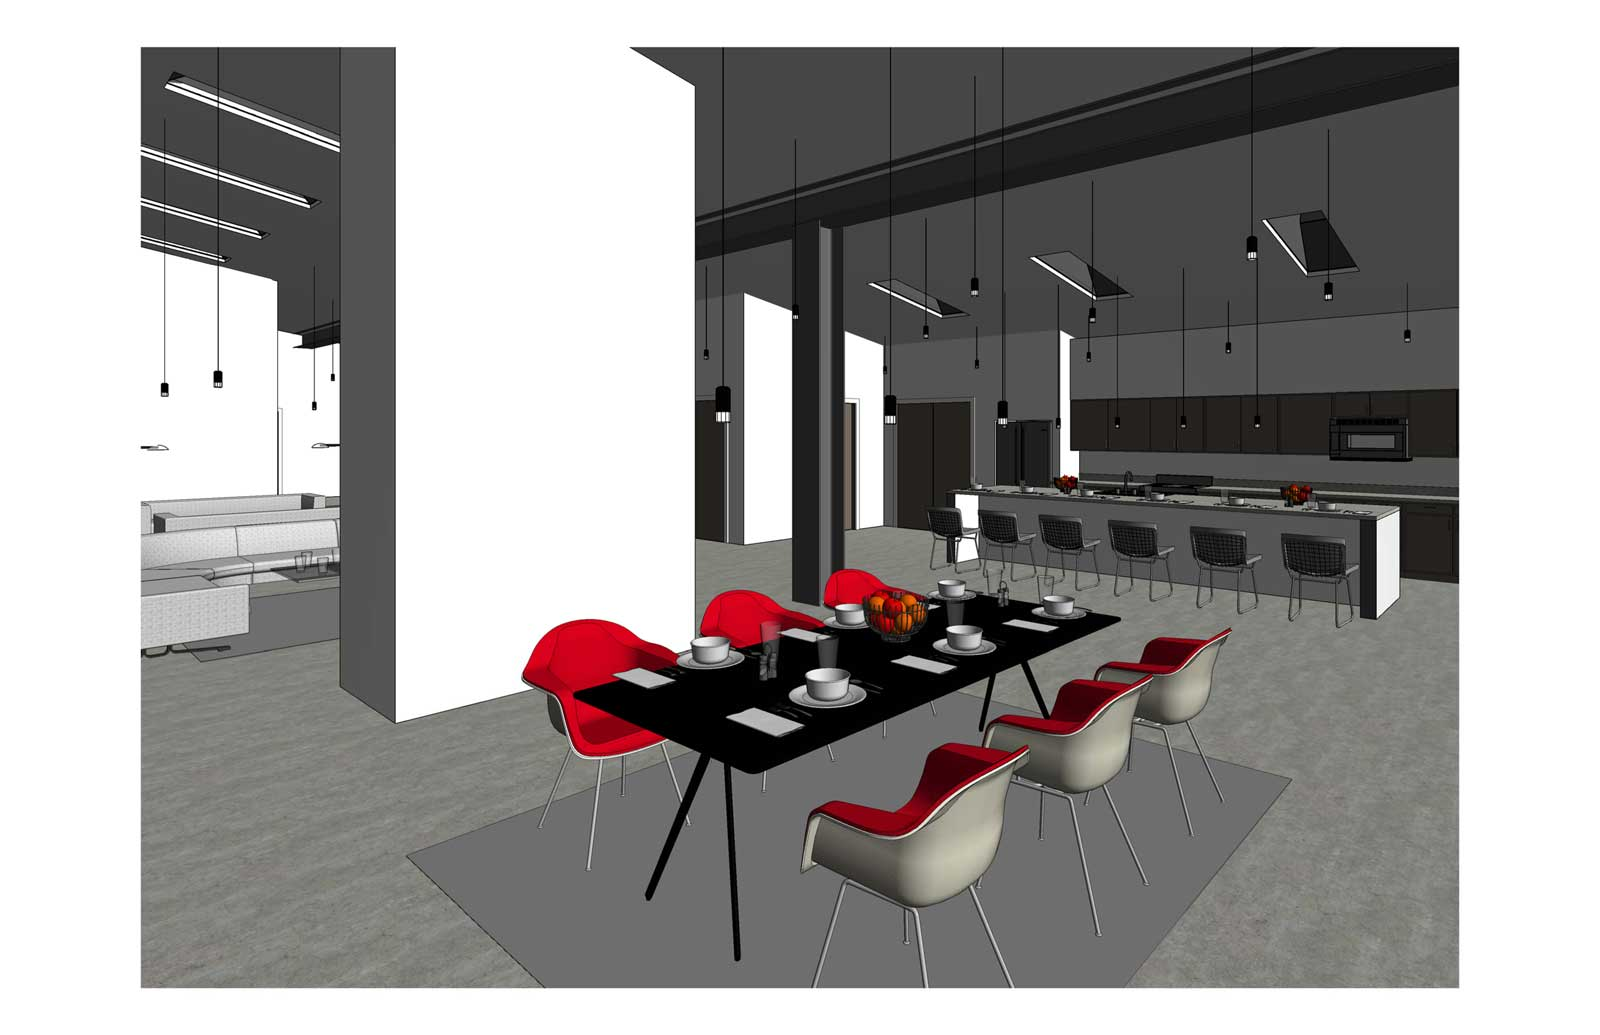 17x30 - Single Family High End Residence - Dining Sketch